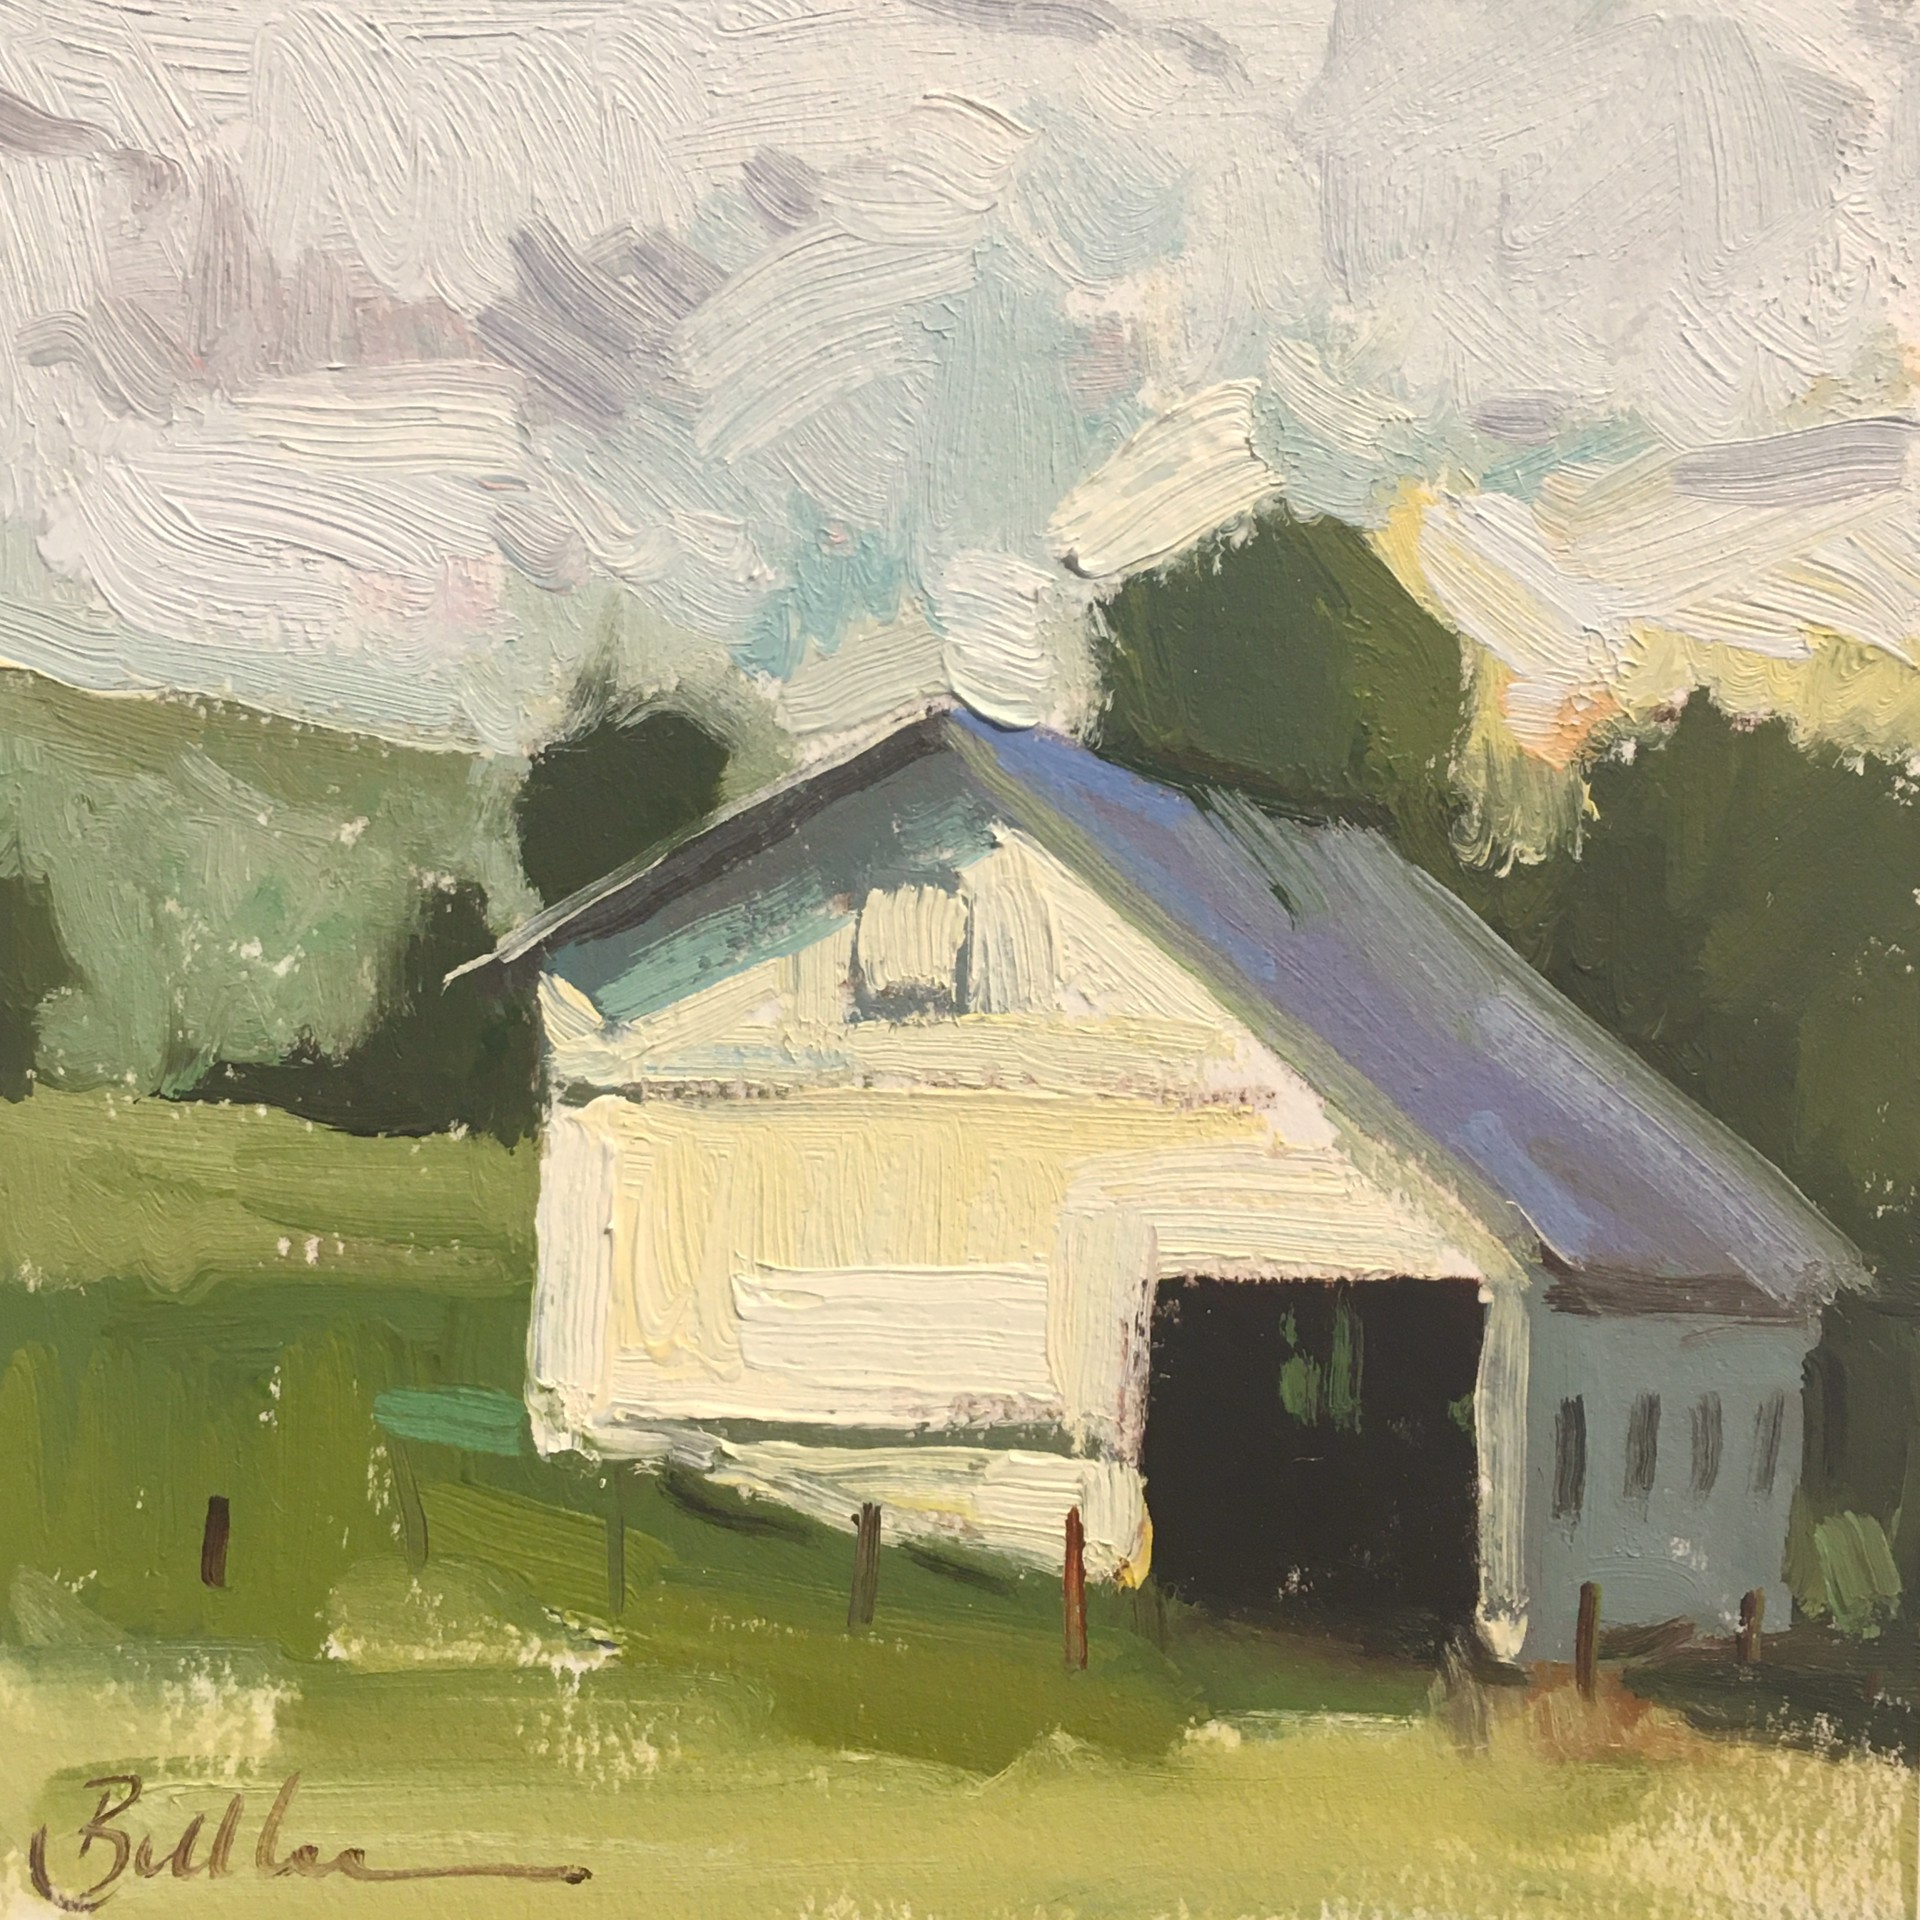 Old White Barn by Samantha Buller